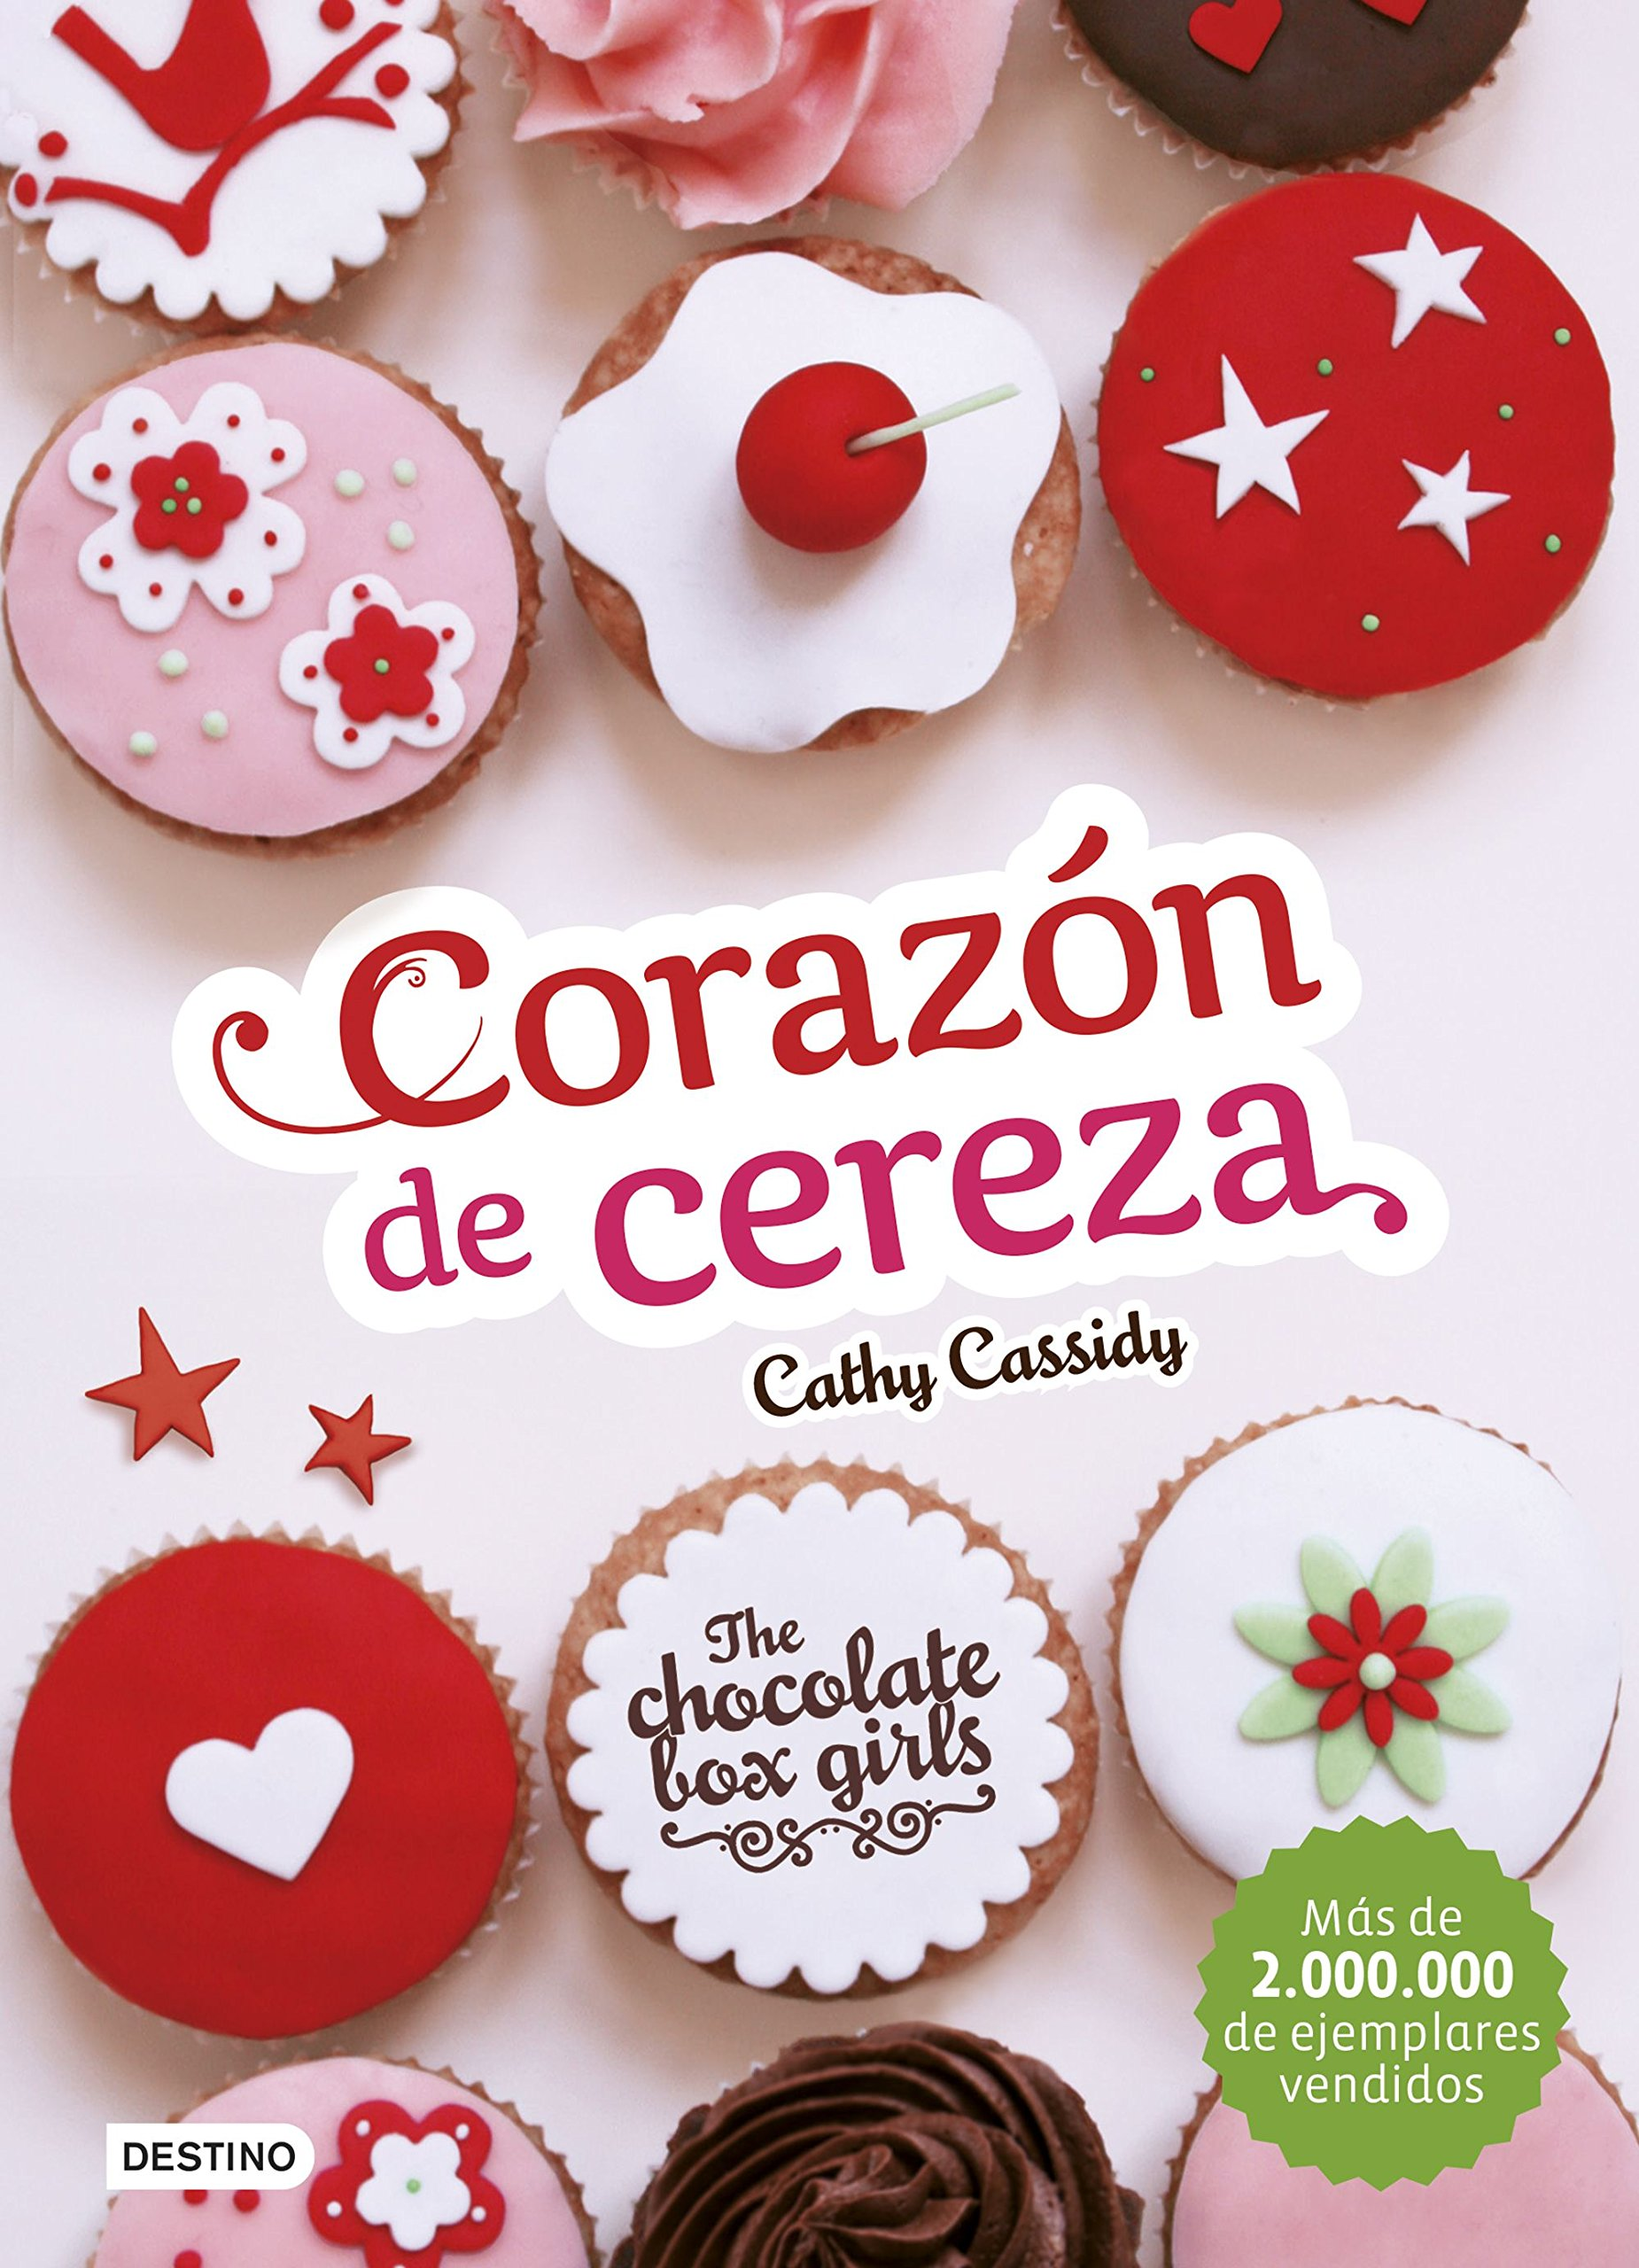 The chocolate box girls 1. Corazón de cereza: Cathy Cassidy: 9788408155225: Amazon.com: Books